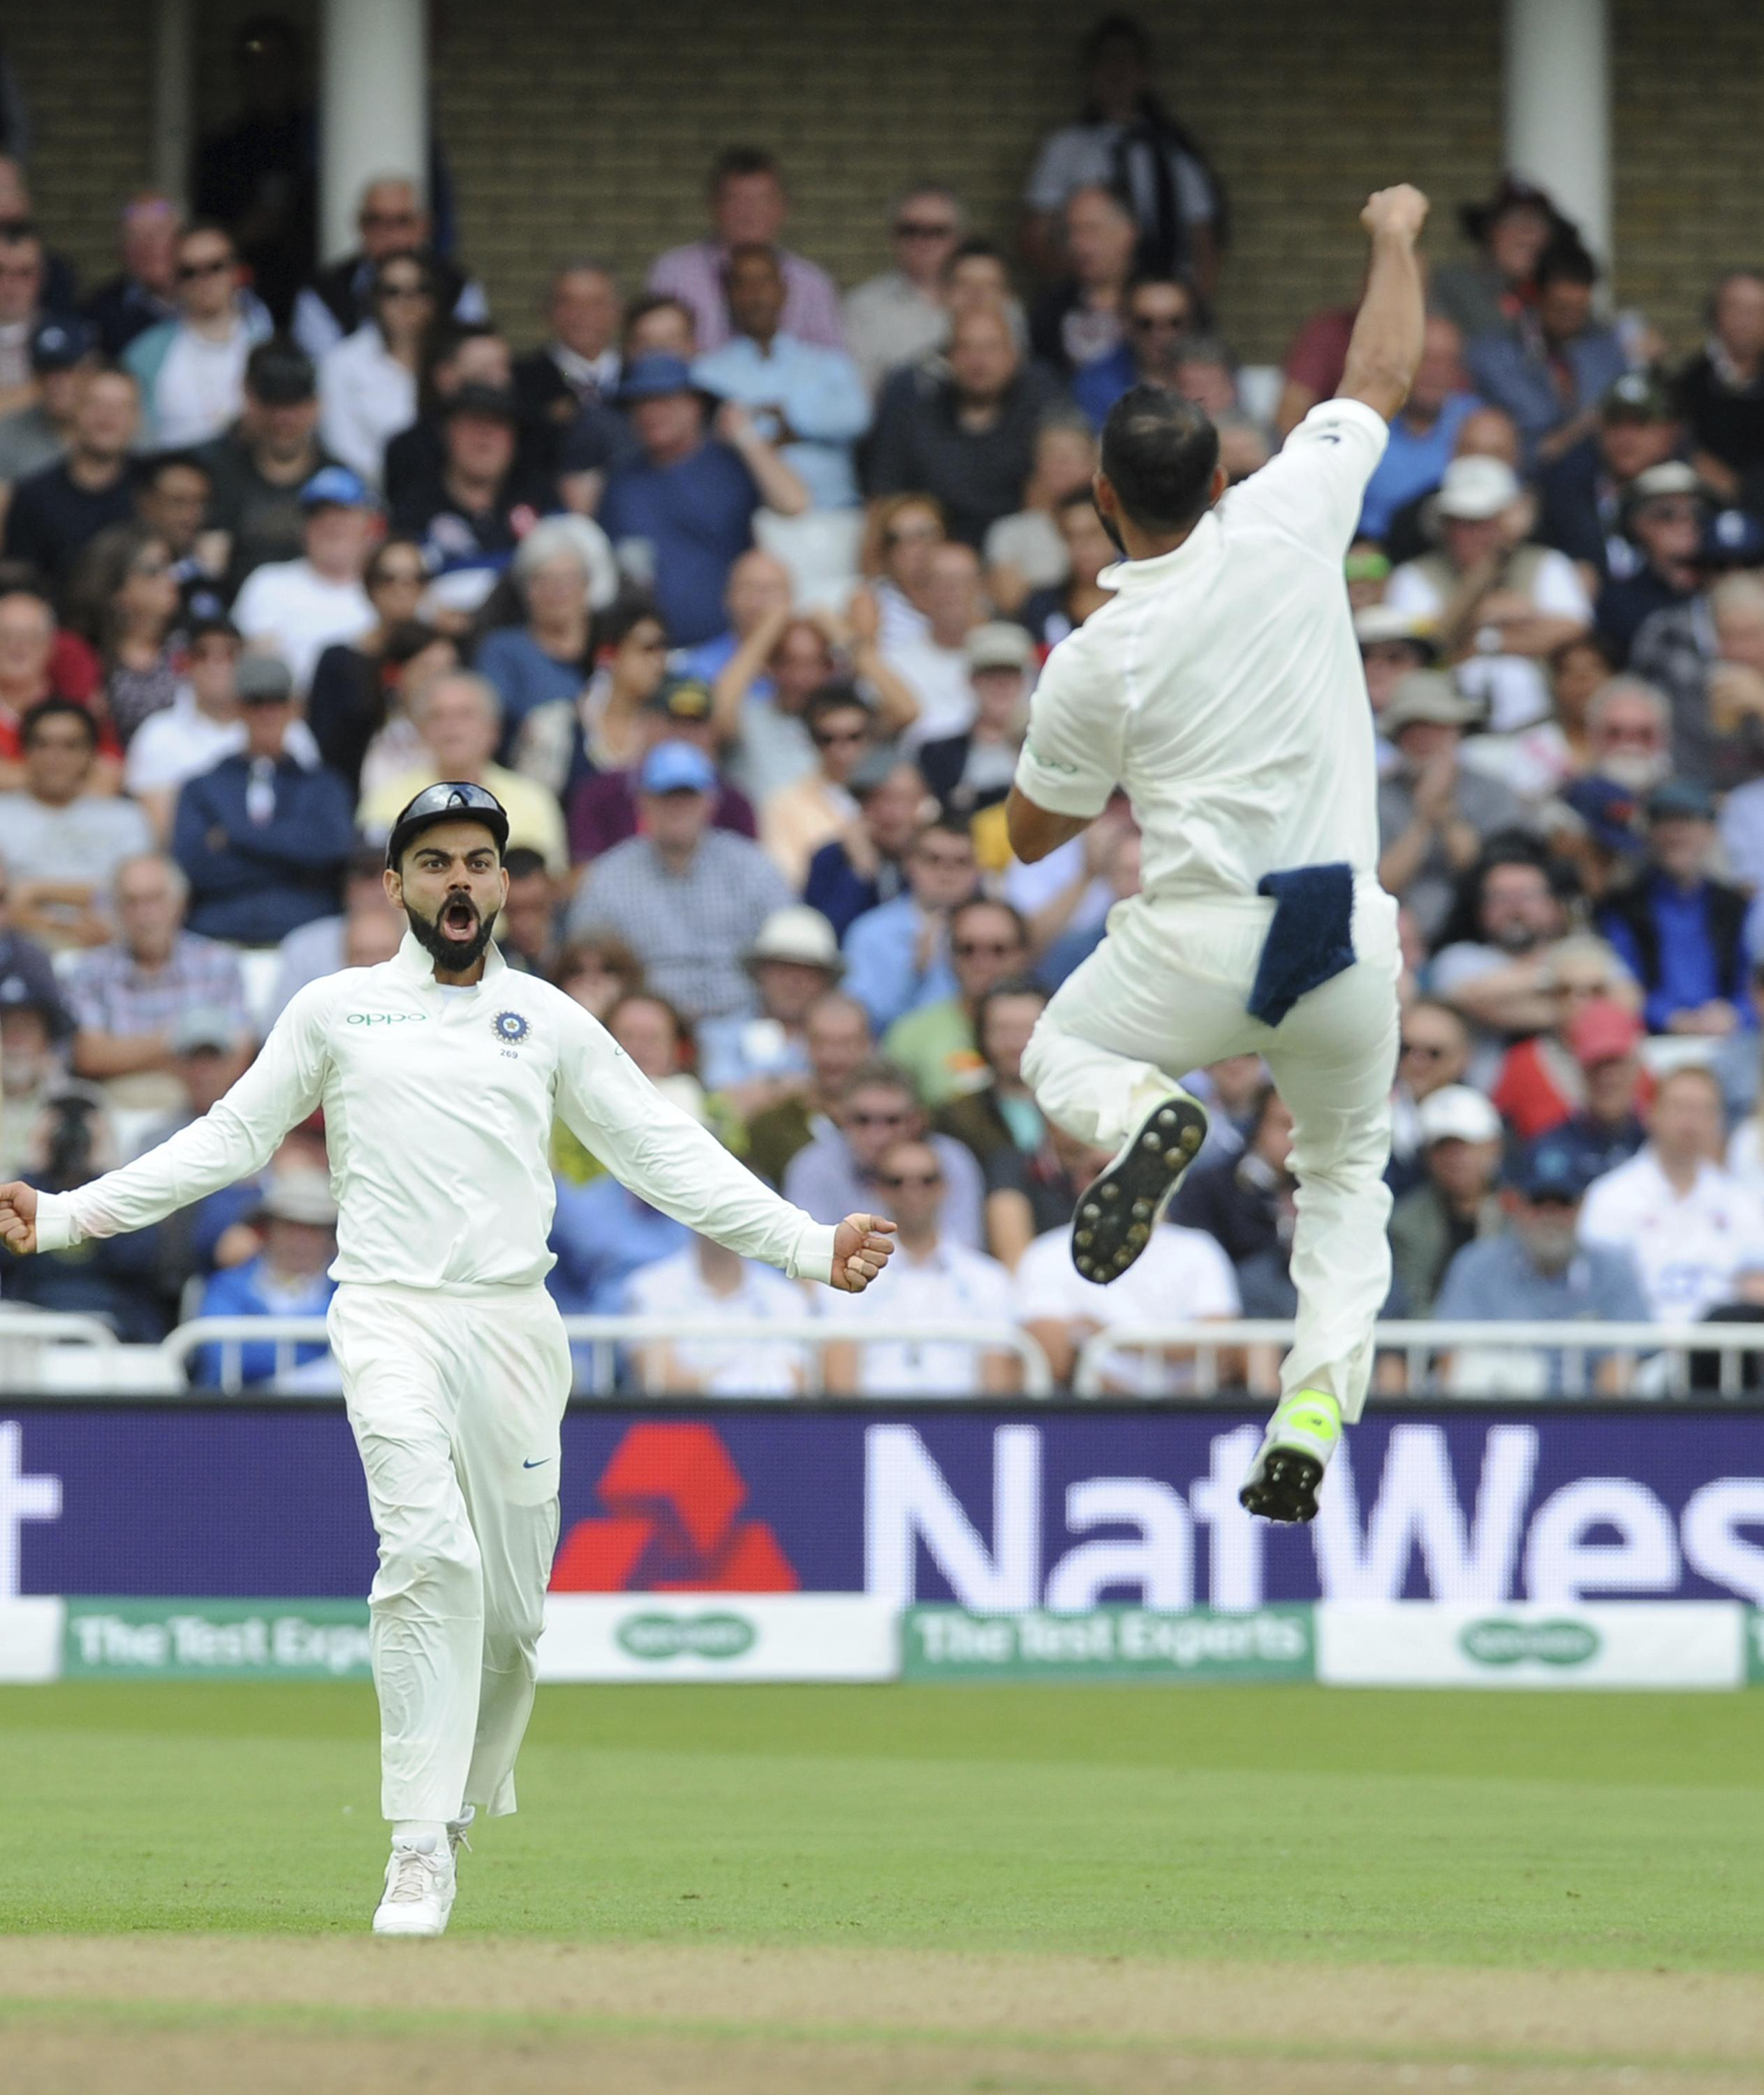 This was a familiar sight in Nottingham during the afternoon session as England lost all ten wickets in one session